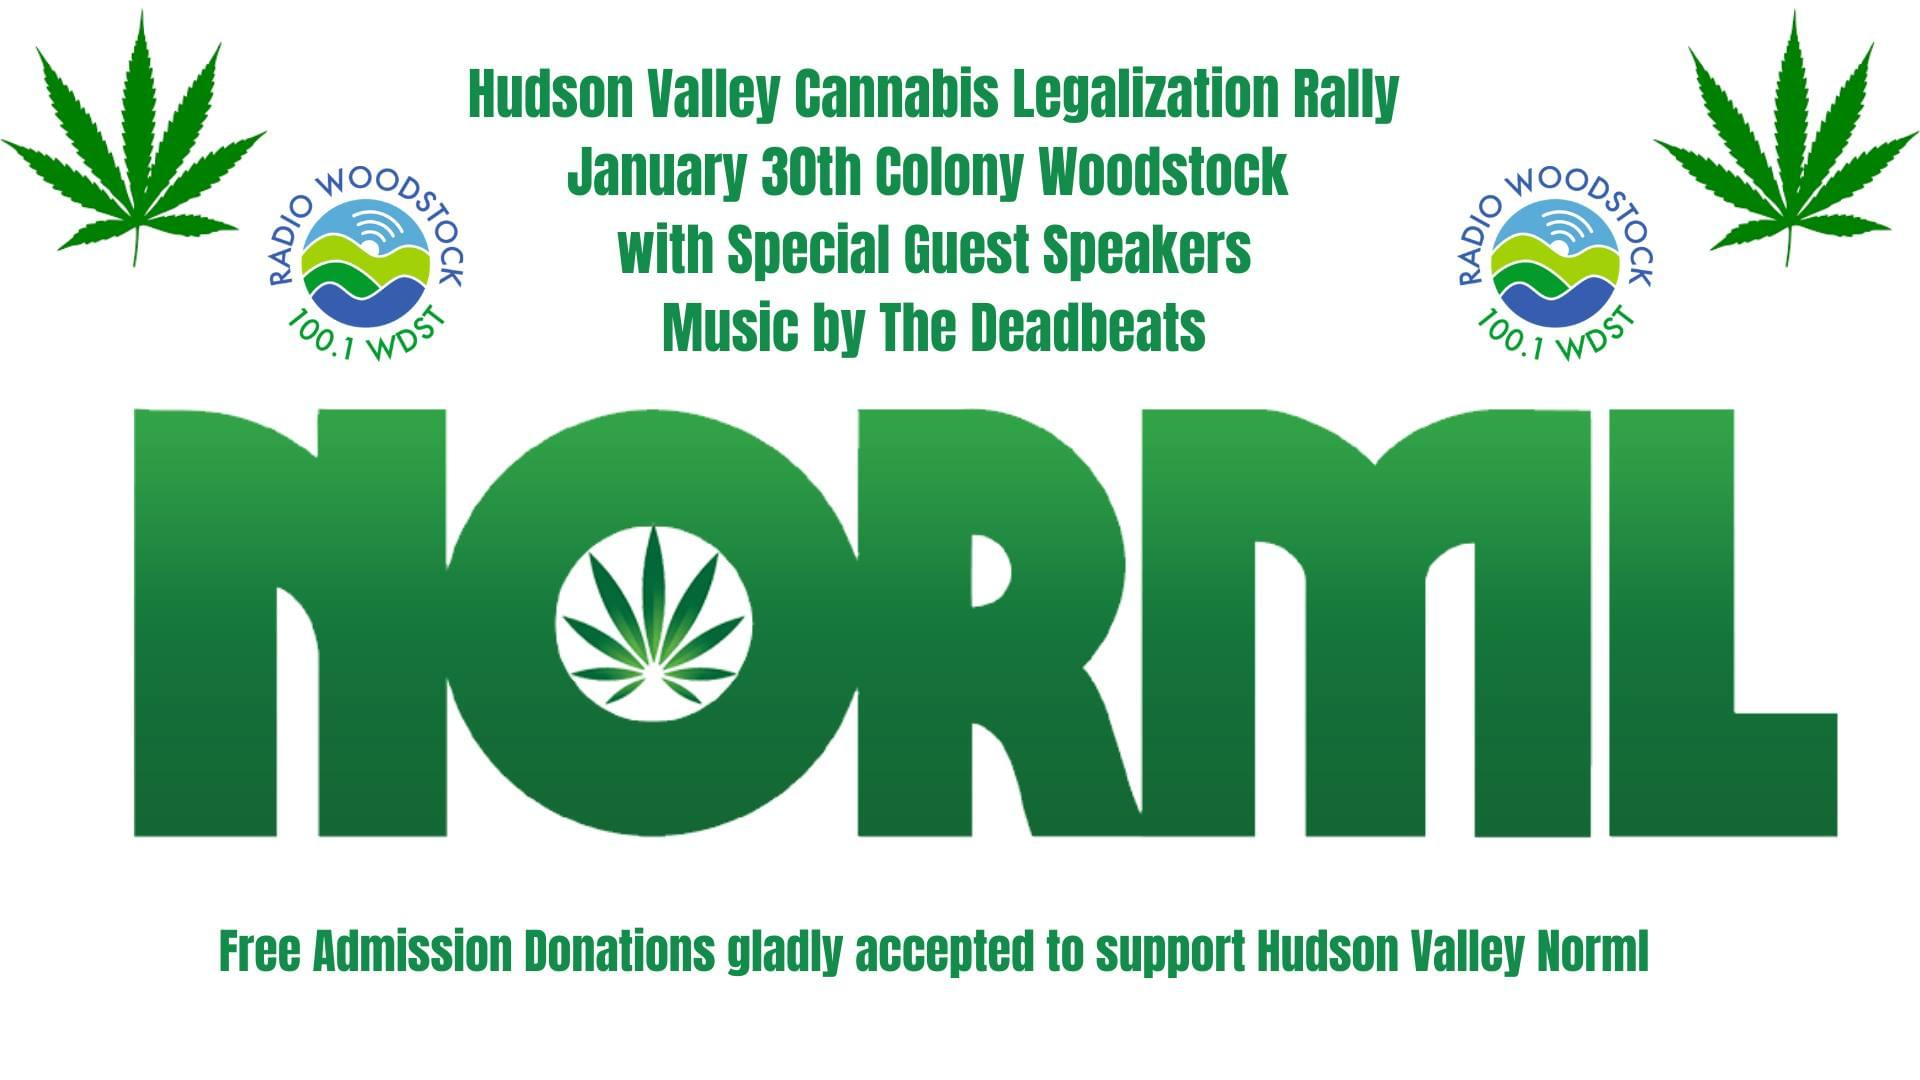 Steve Bloom, NORML – 1/27/20